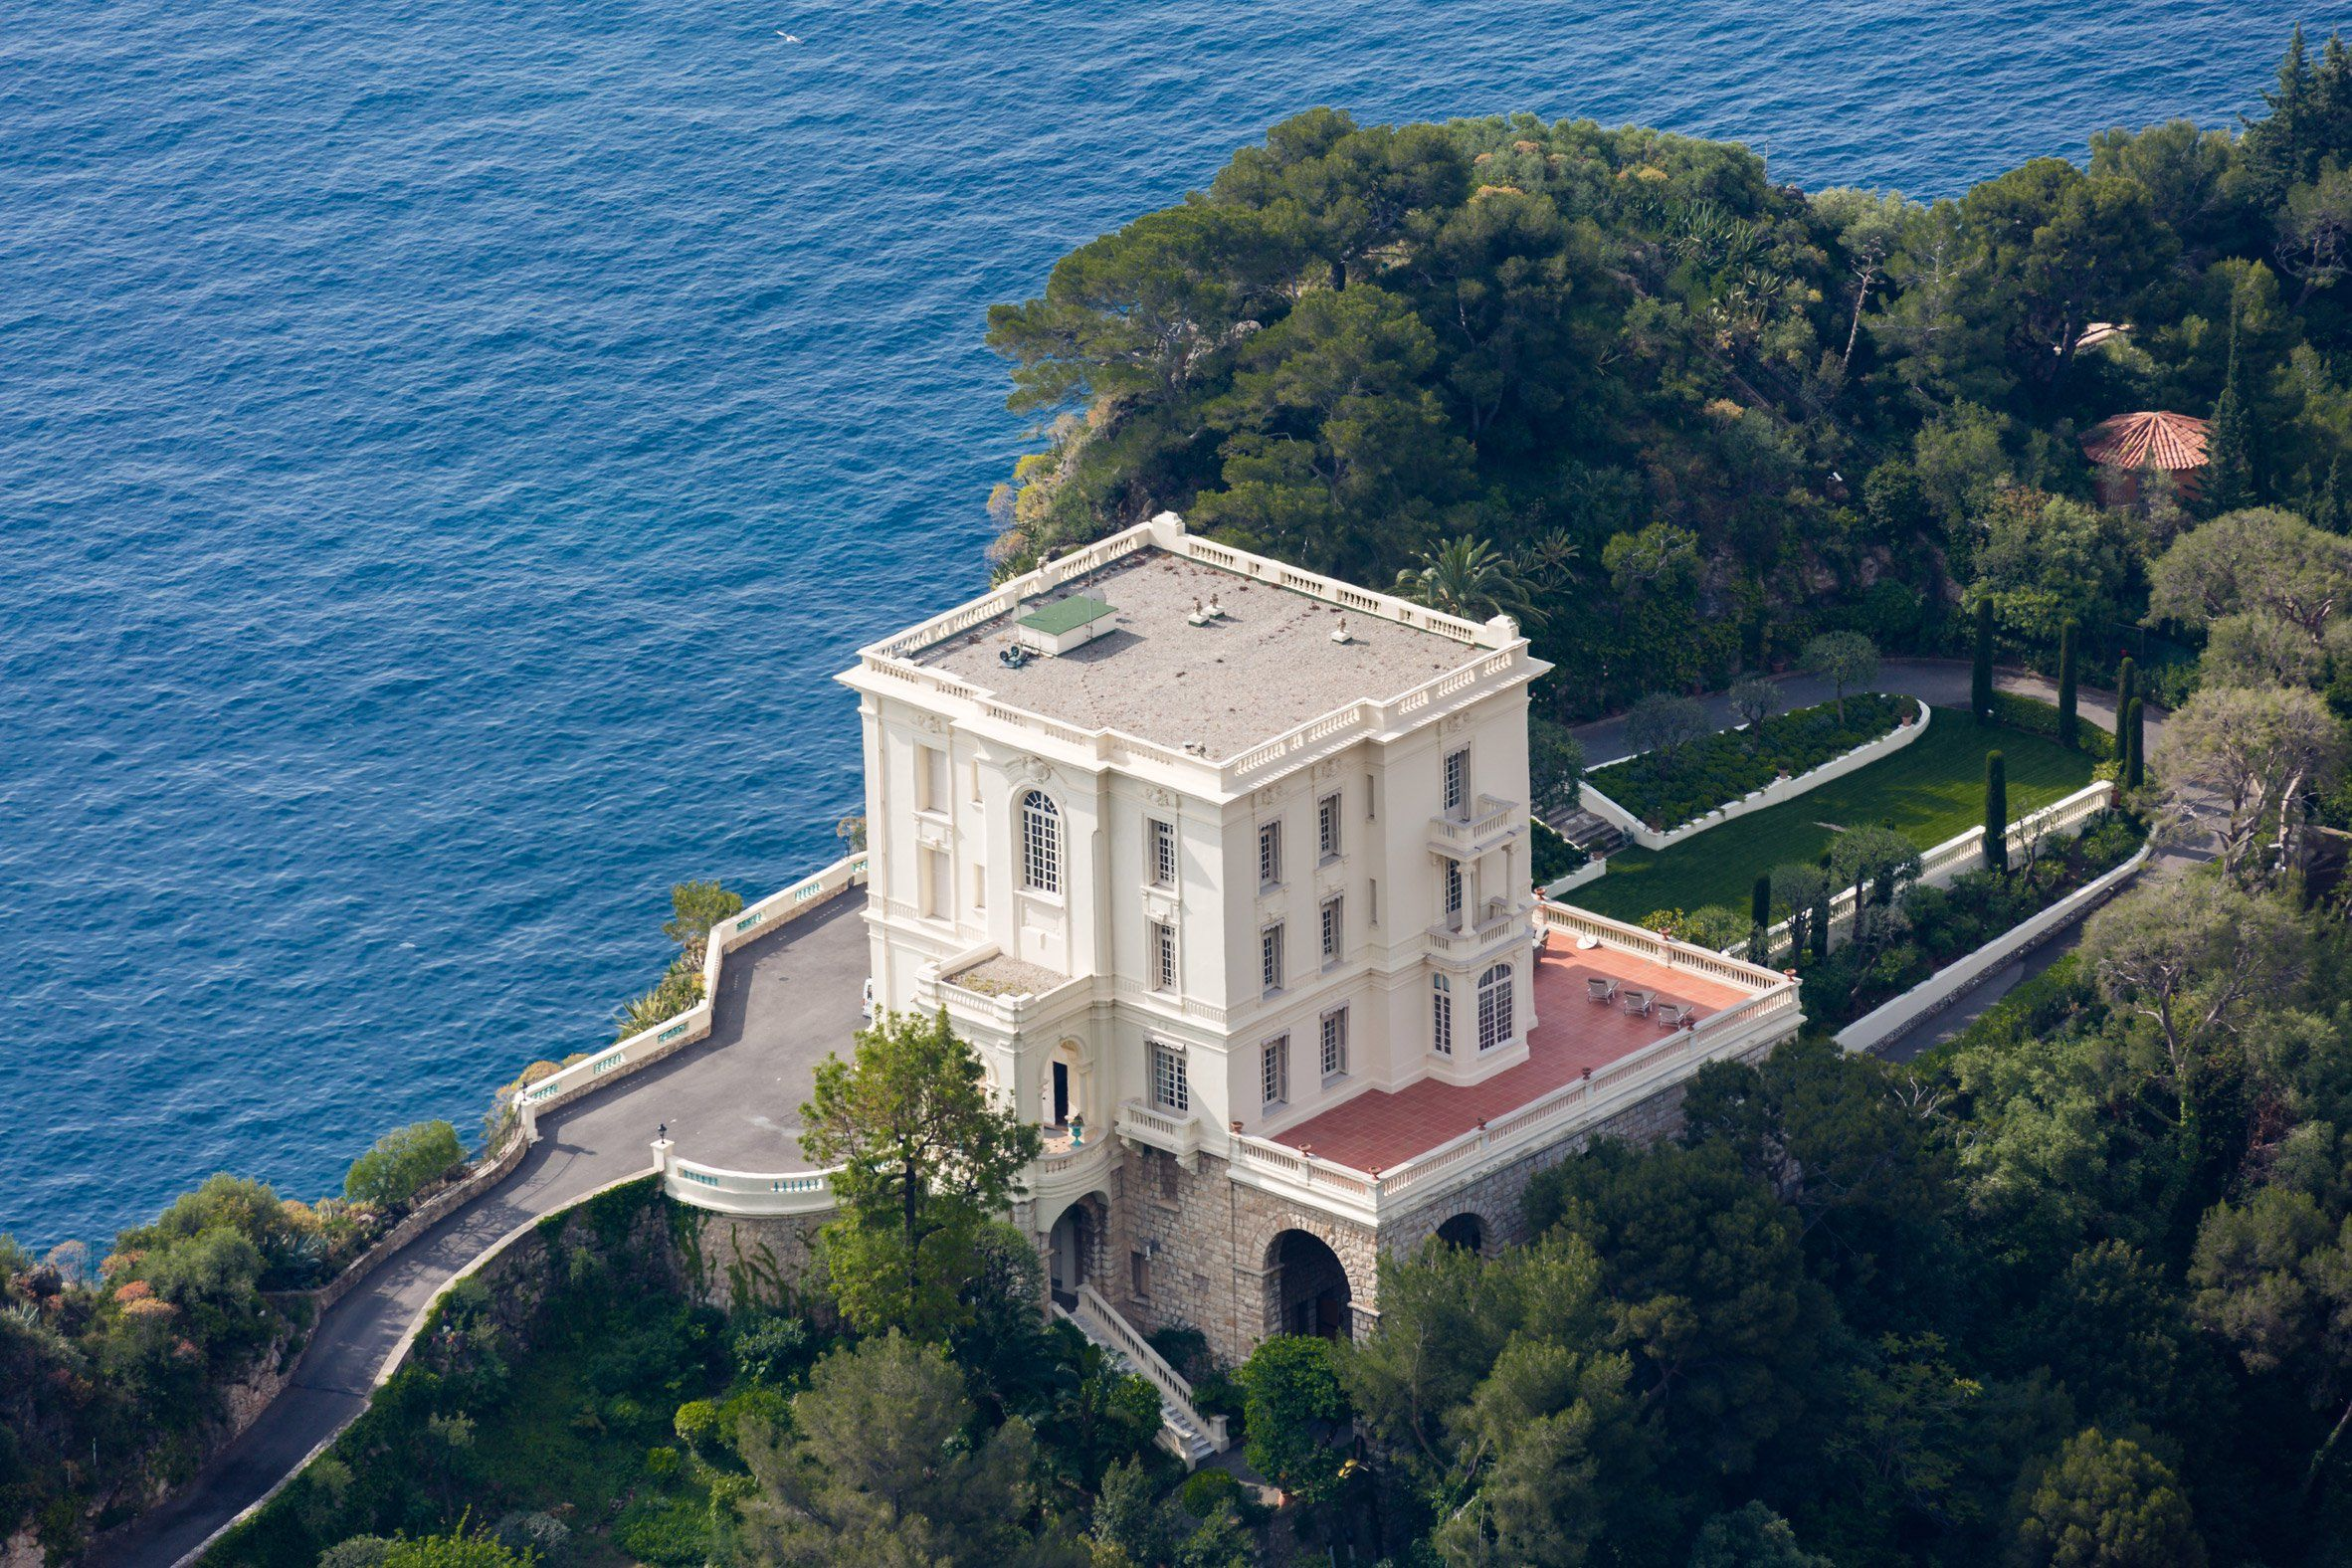 A Monte Carlo villa that Karl Lagerfeld occupied for over a decade ...